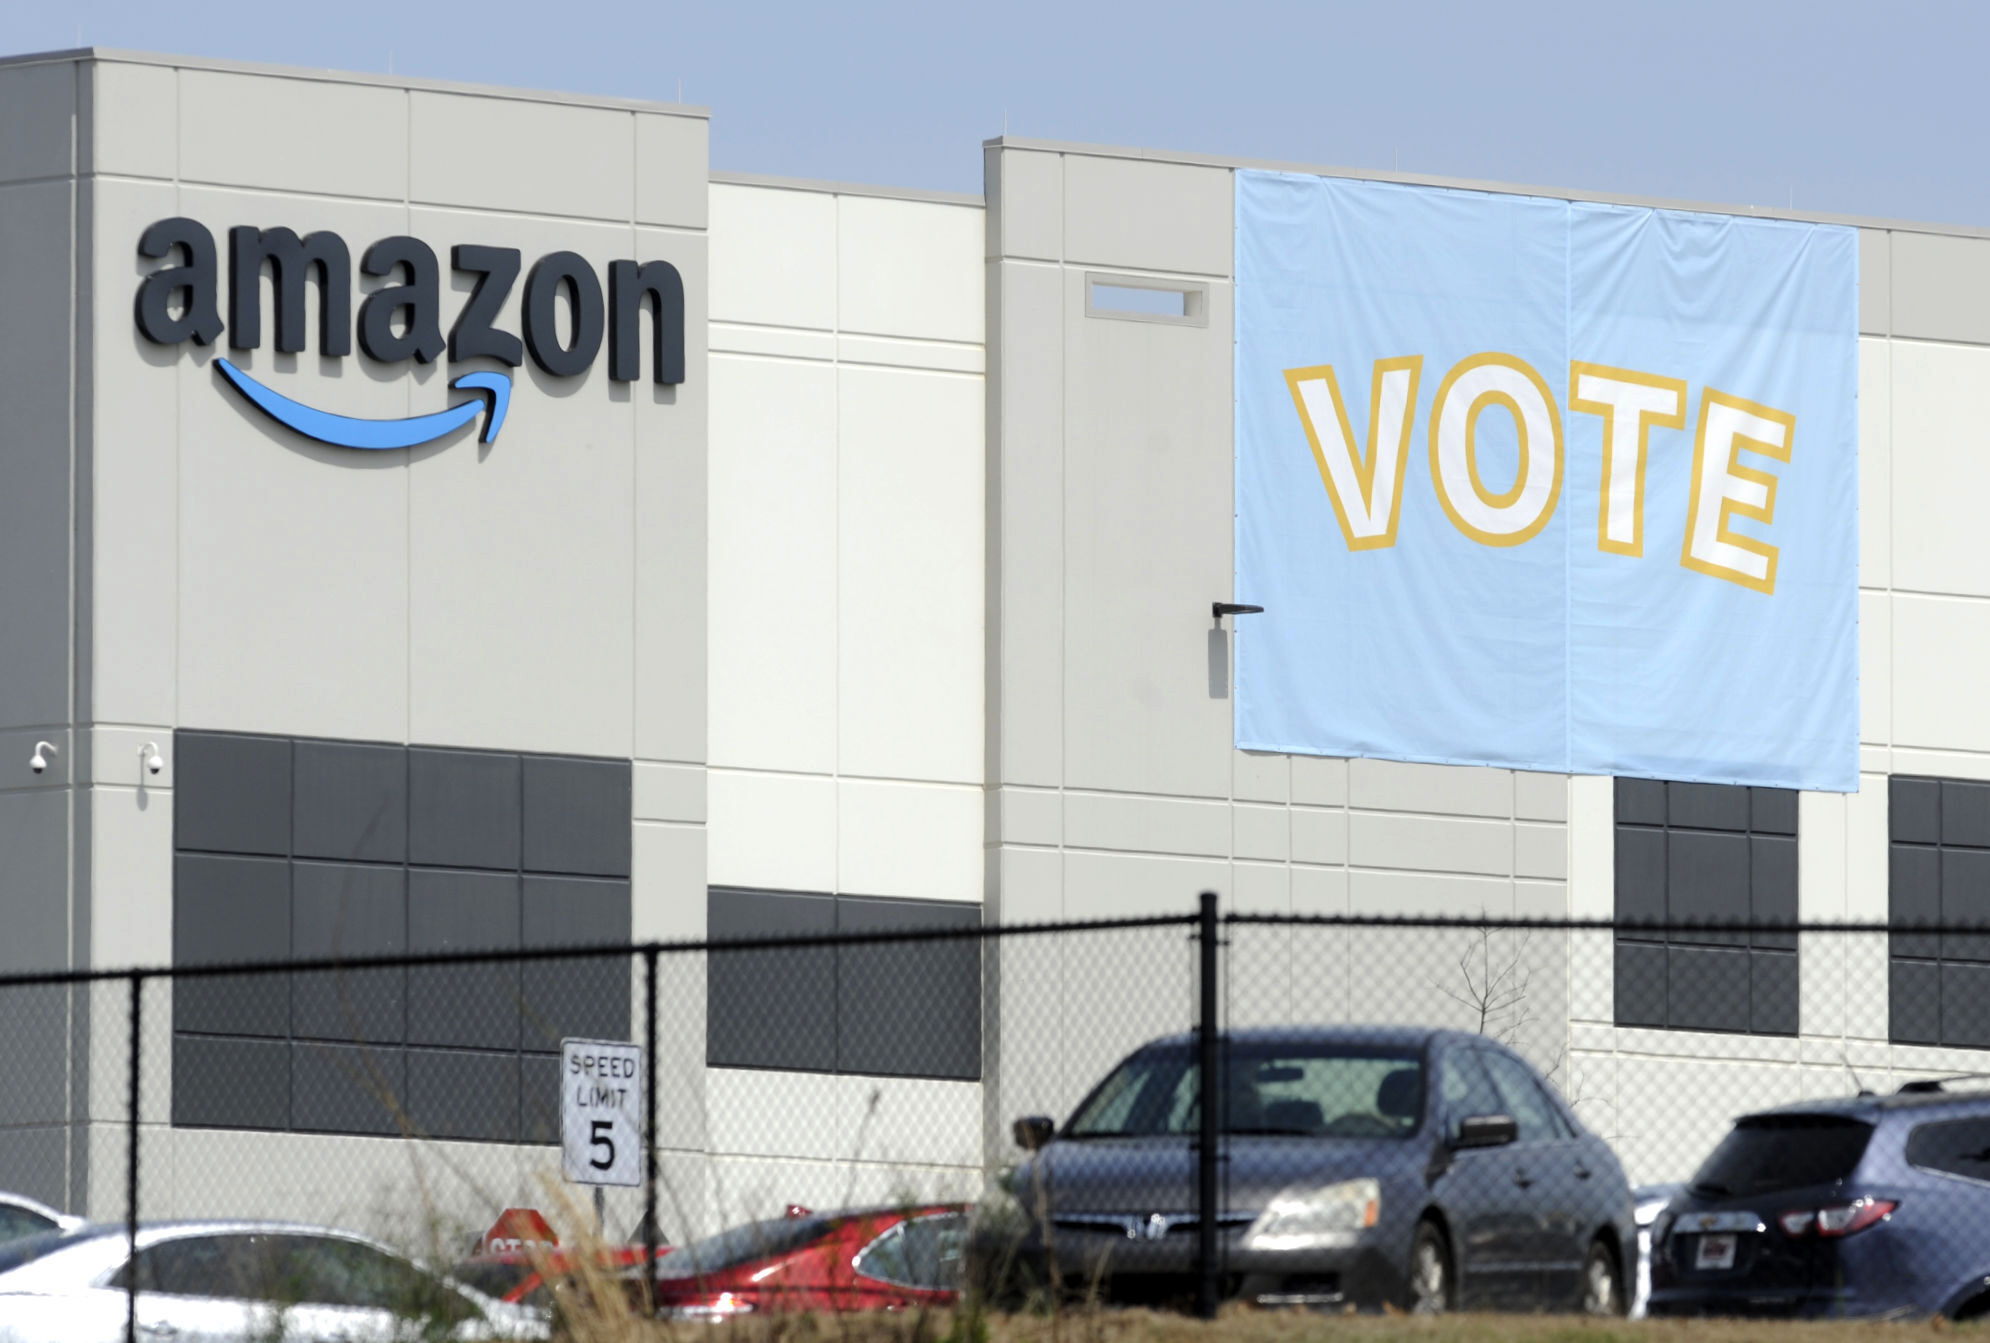 In this March 30, 2021 file photo, a banner encouraging workers to vote in labor balloting is shown at an Amazon warehouse in Bessemer, Ala. (AP Photo/Jay Reeves, File)